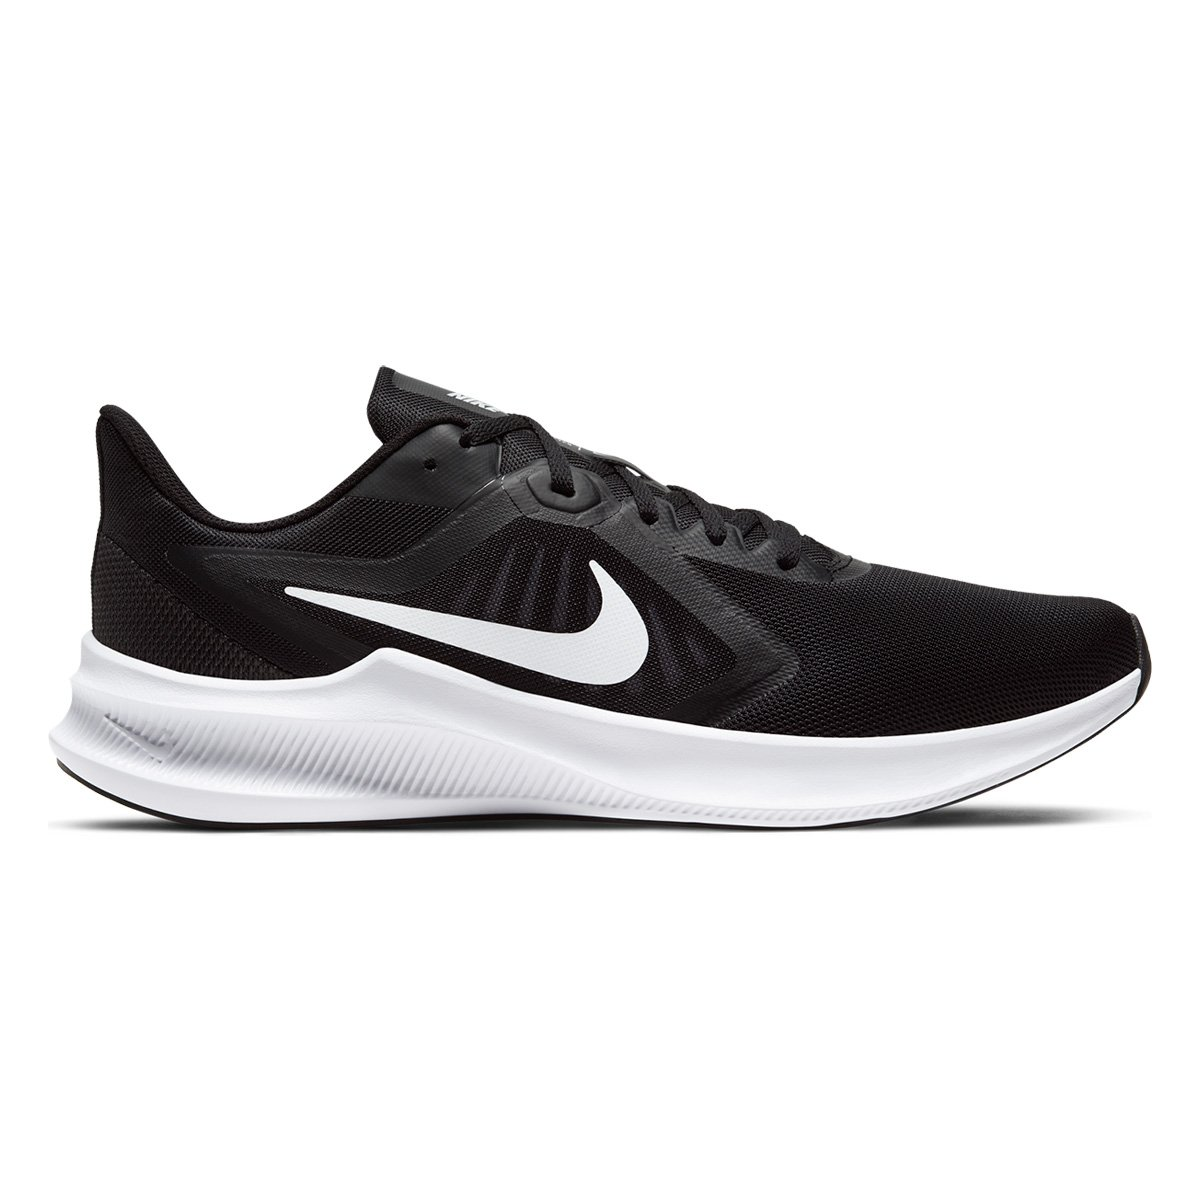 Tenis Nike Downshifter 10 Masculino Running Training